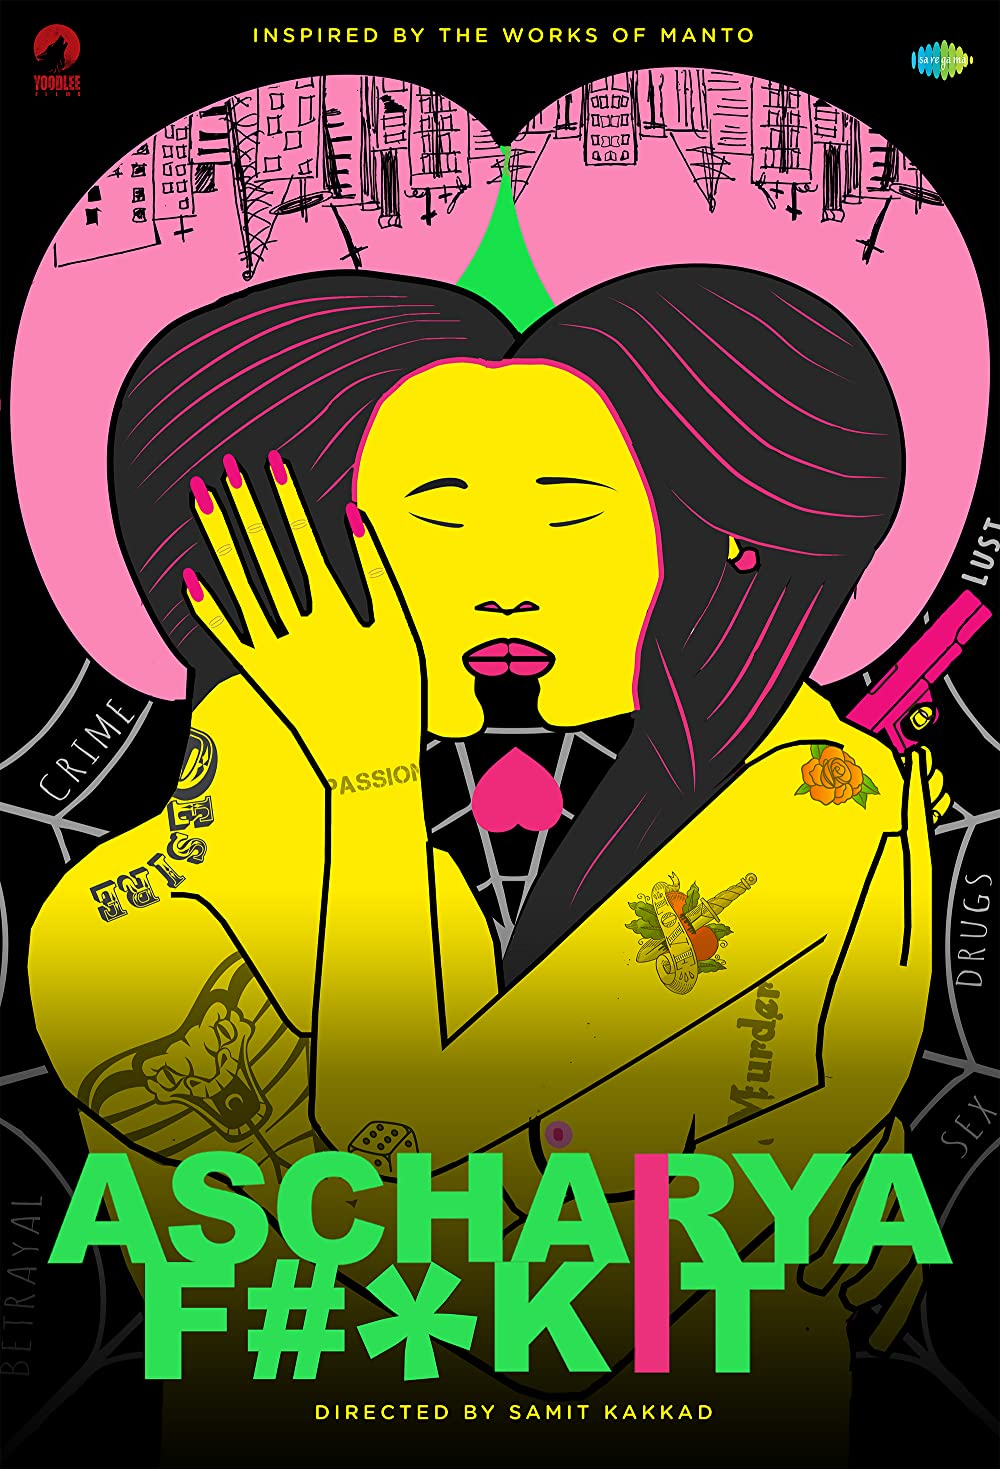 18+ Ascharya Fk It 2018 Hindi 300MB UNRATED HDRip ESubs Download